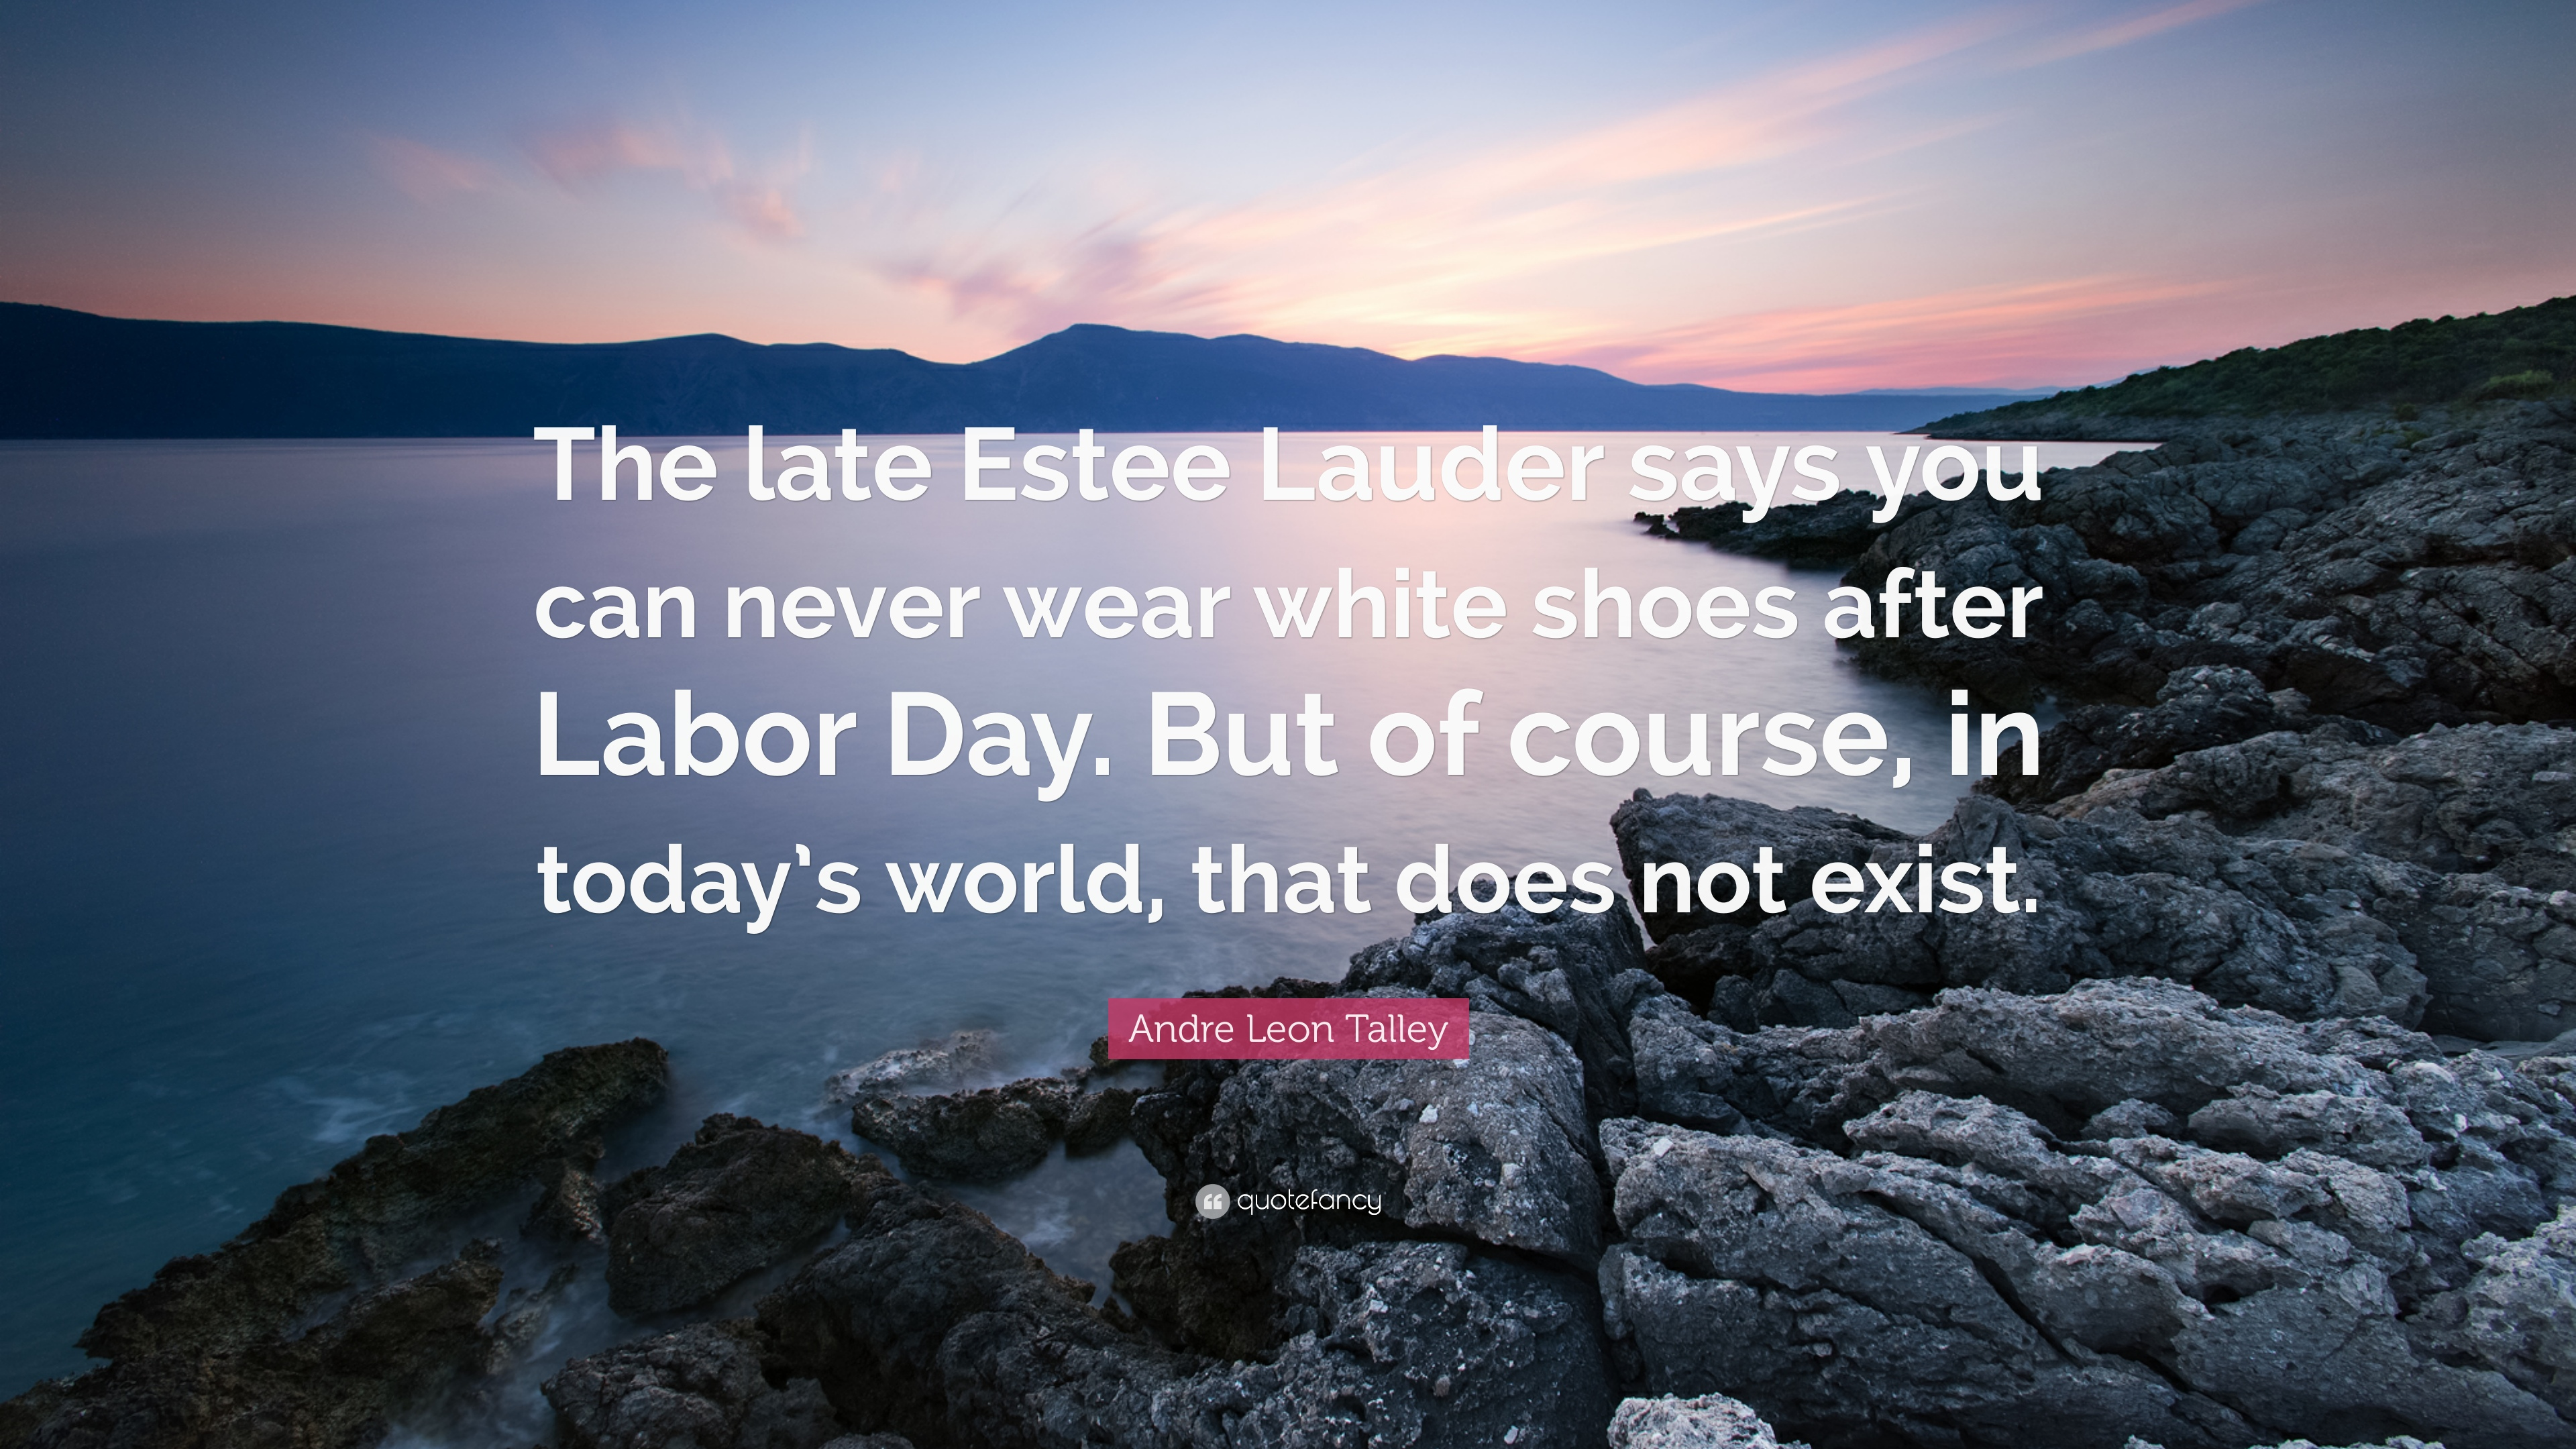 Andre Leon Talley Quote The Late Estee Lauder Says You Can Never